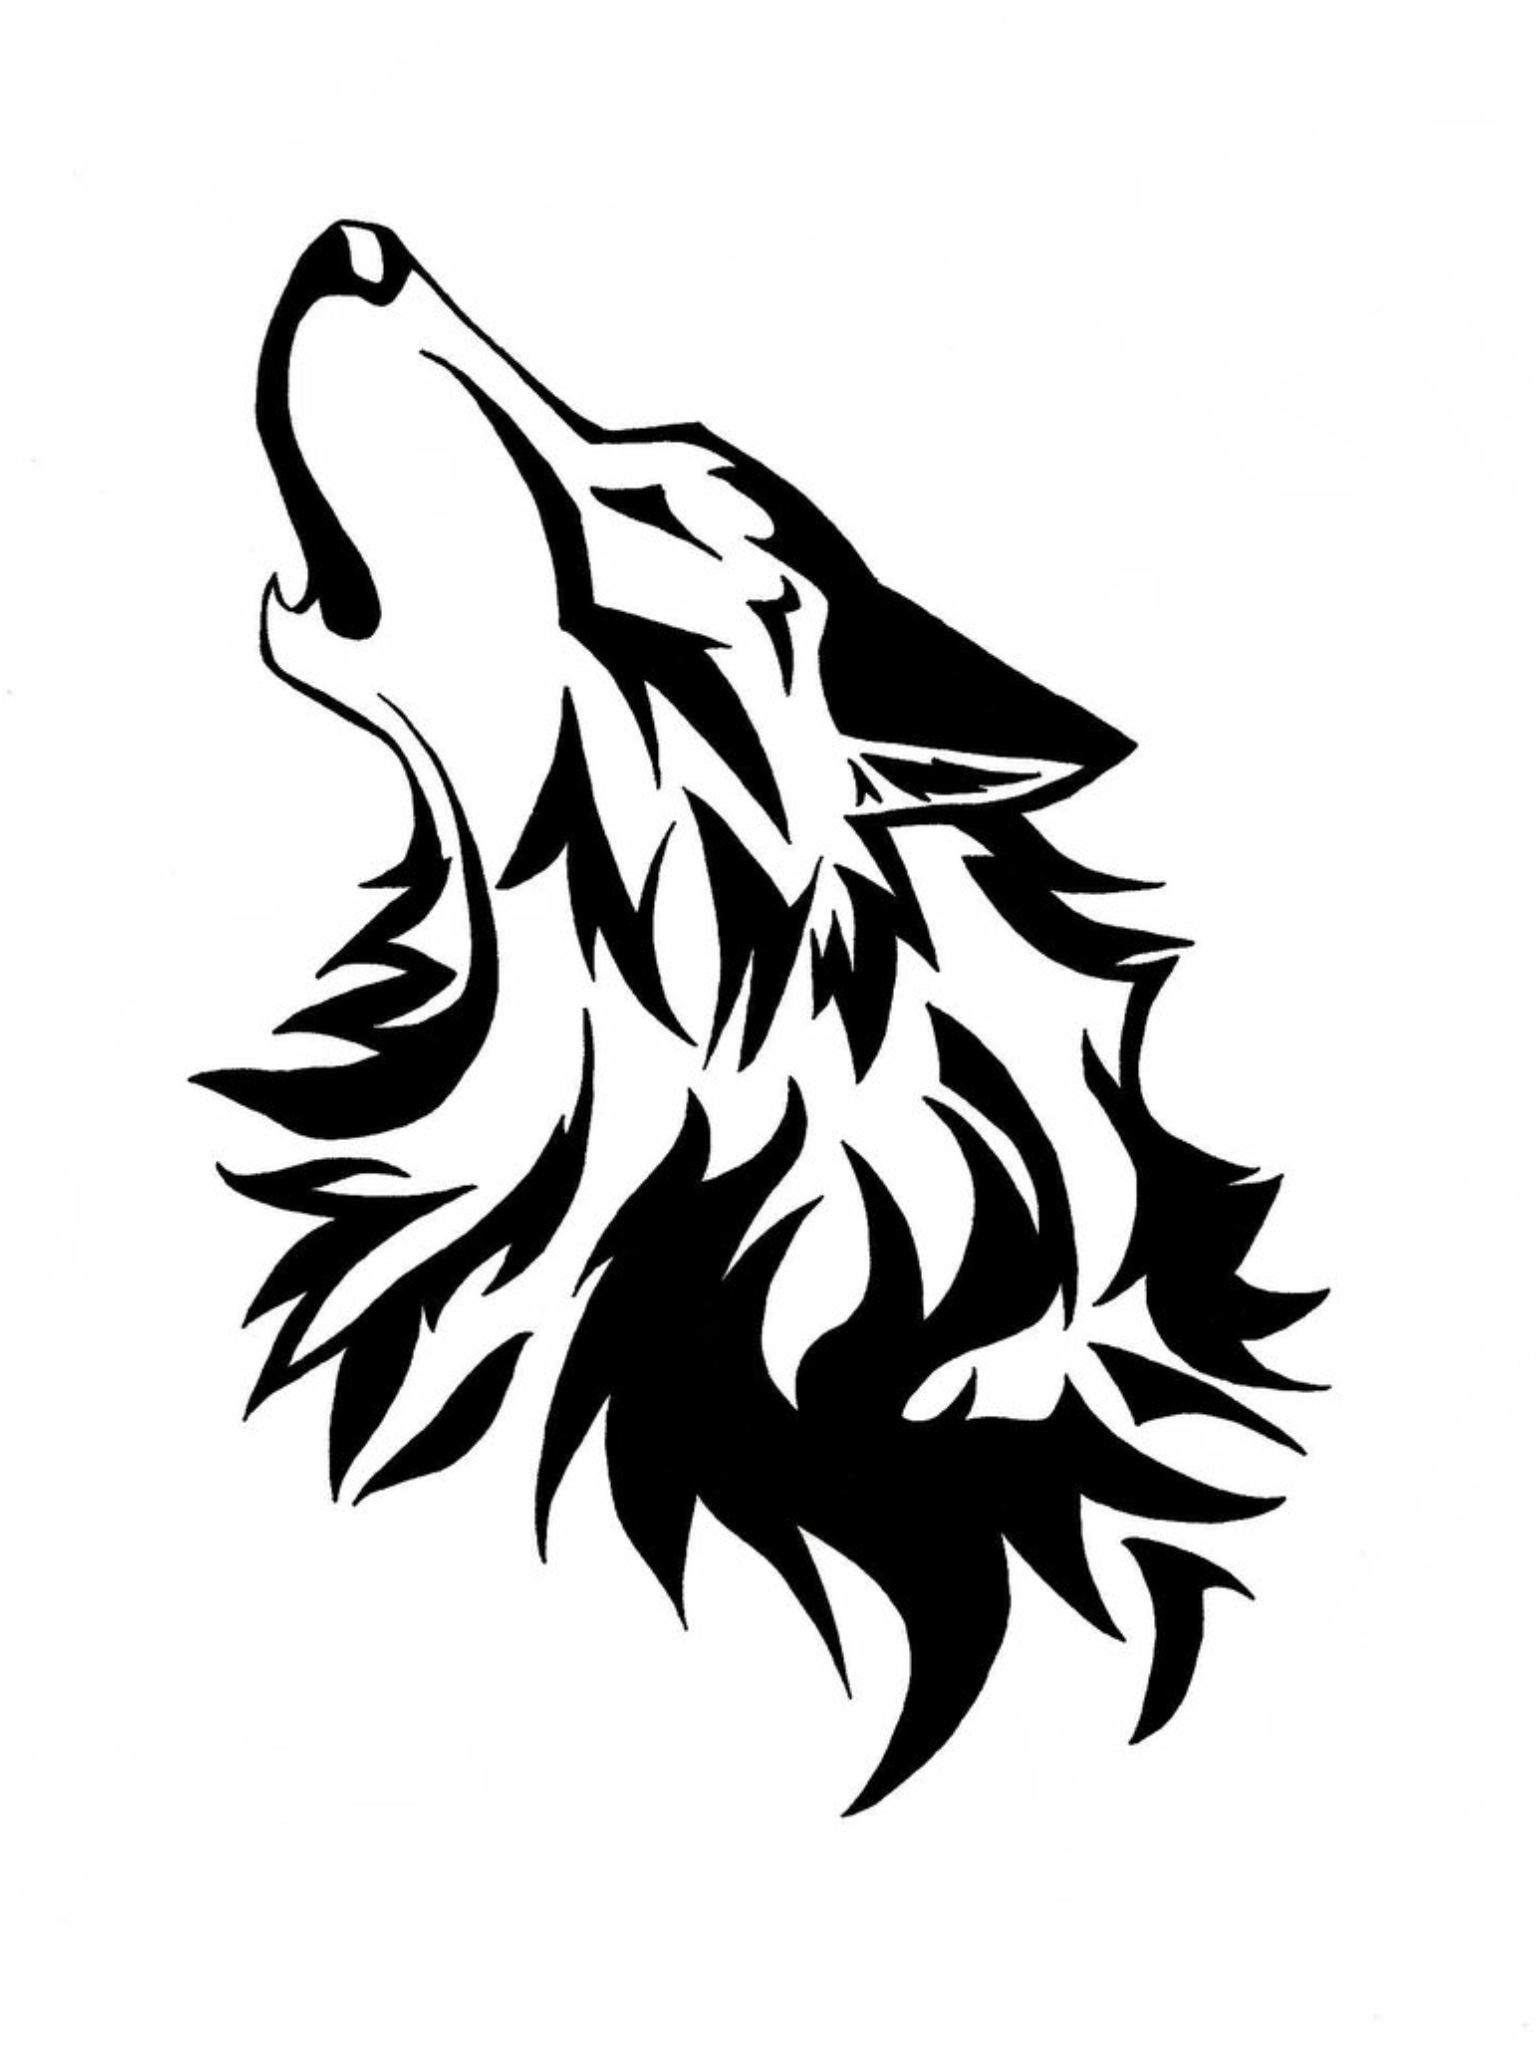 Drawn howling wolf tatoo By kinds Wolf Pin Milly